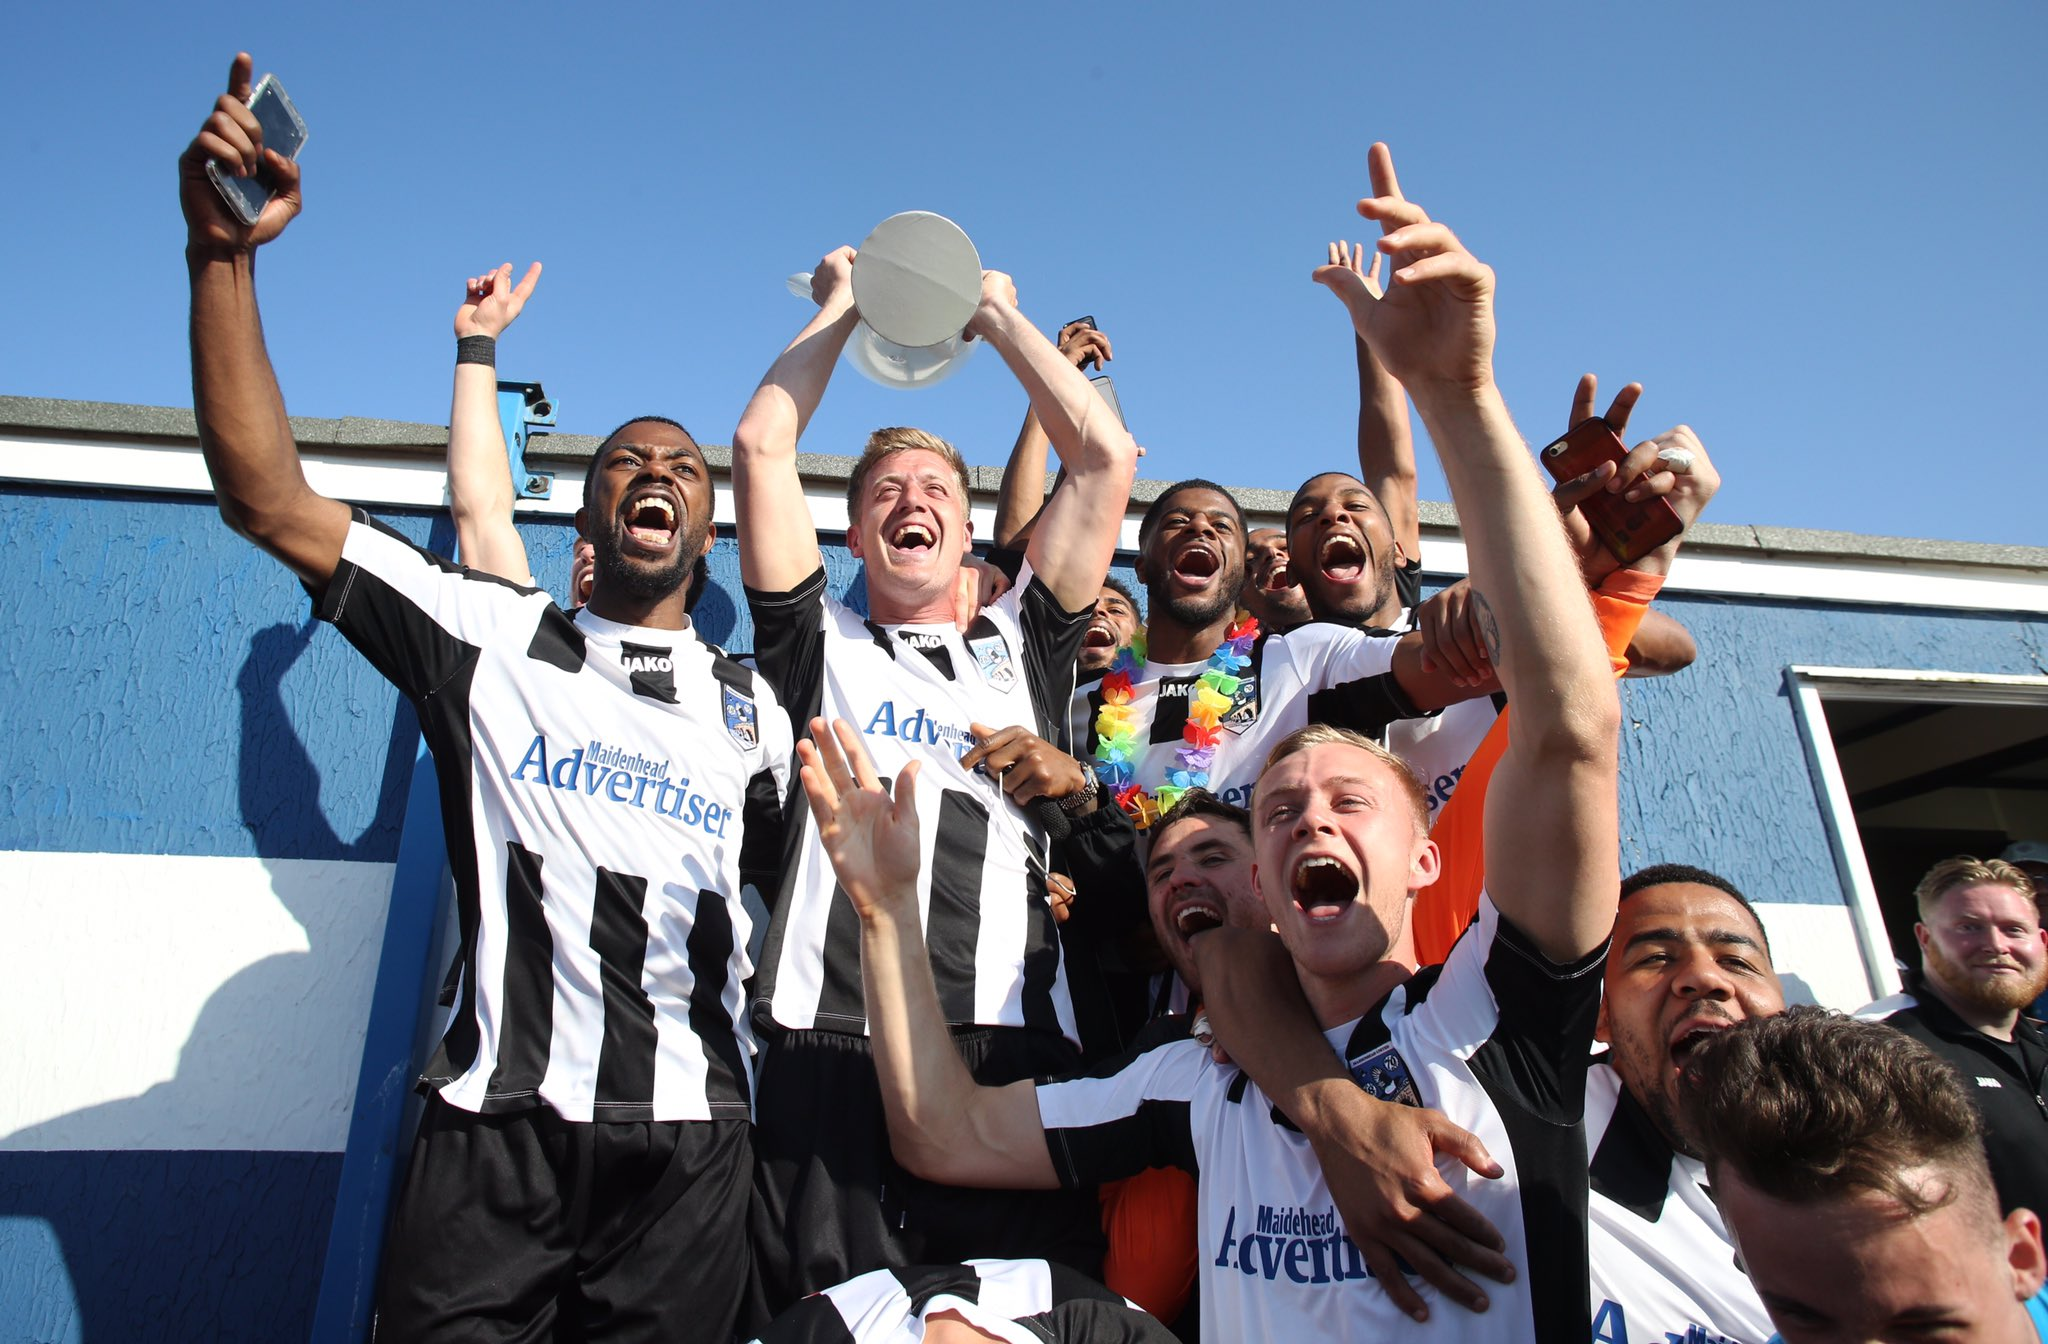 Maidenhead United celebrate winning the National League South title after a 3-0 win at Margate on Saturday. The Magpies top the division with 98 points, two clear of Ebbsfleet United in second place